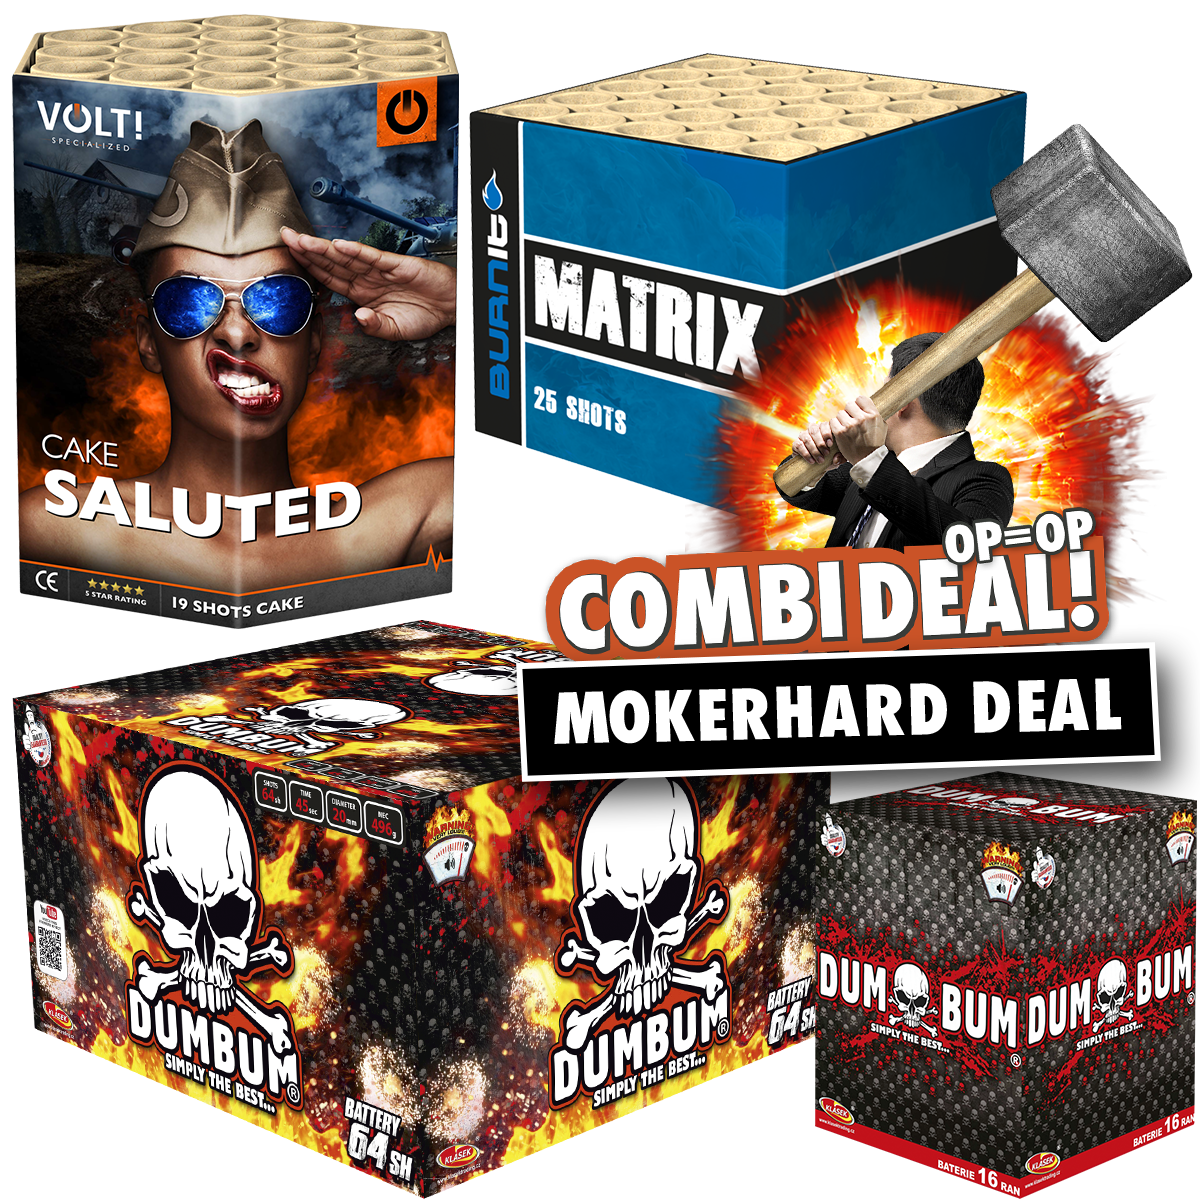 Combi deal mokerhard deal